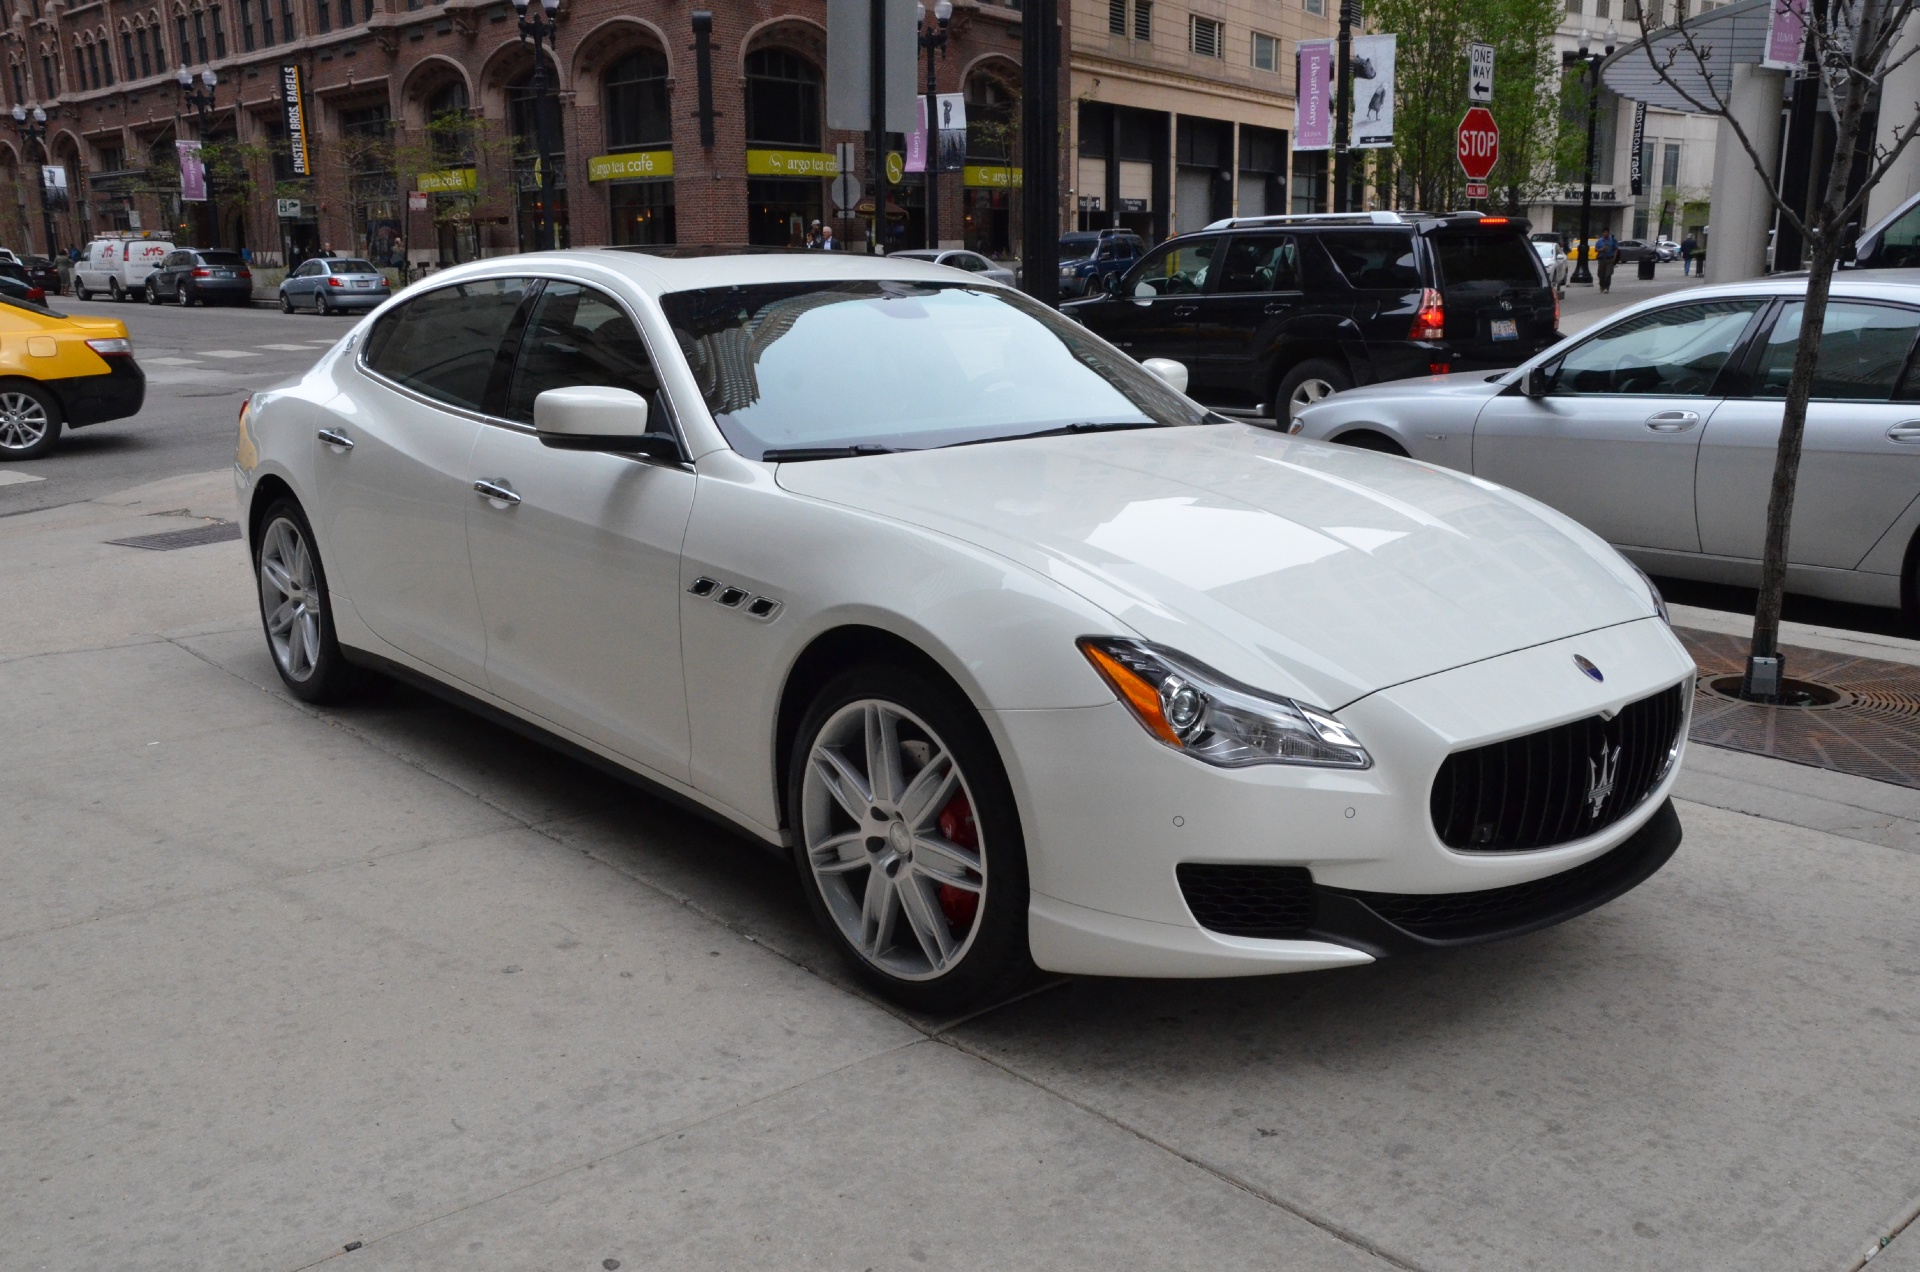 2014 maserati quattroporte s q4 s q4 stock m347 s for sale near chicago il il maserati dealer. Black Bedroom Furniture Sets. Home Design Ideas